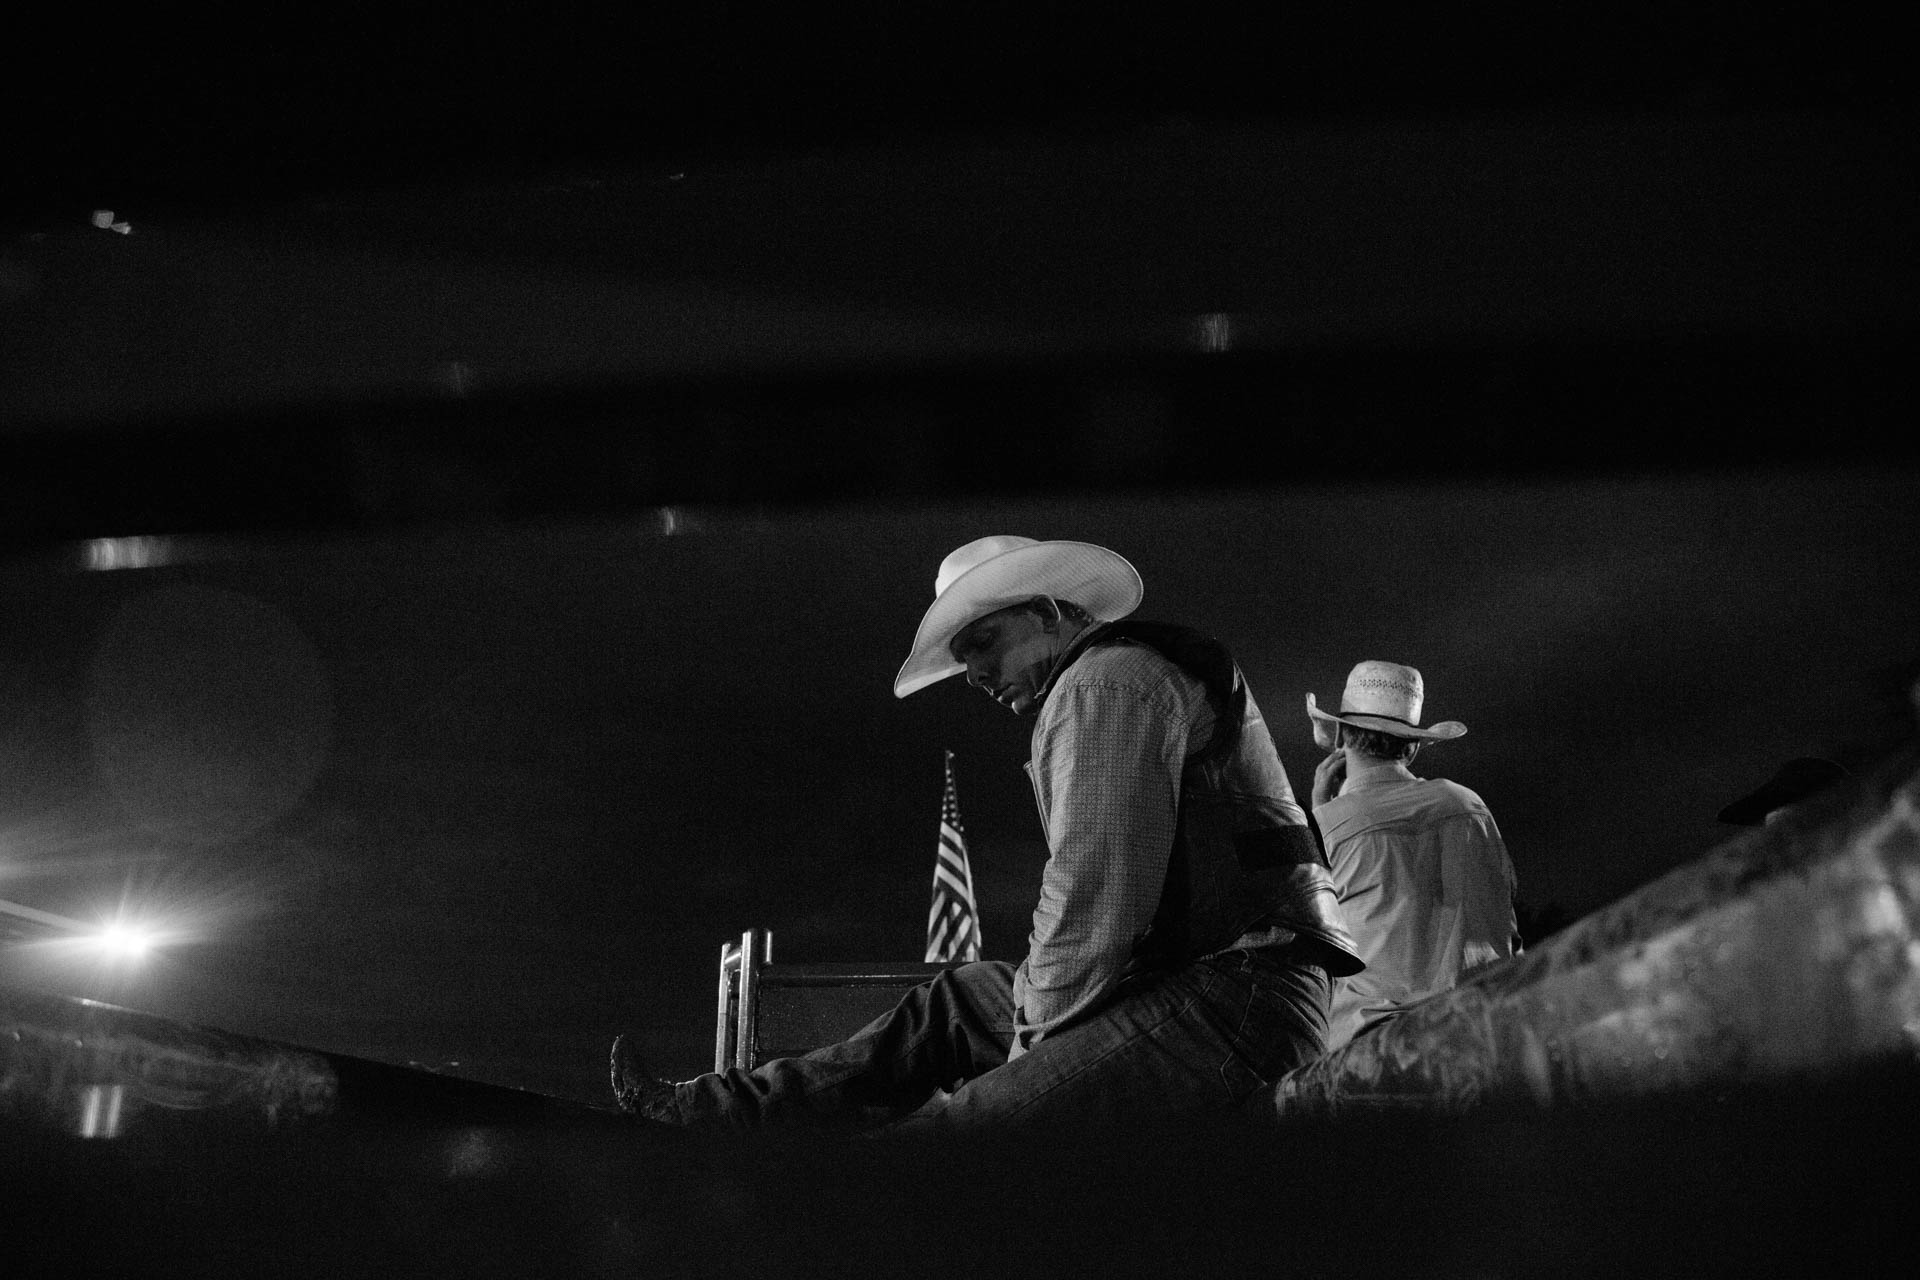 rough-nite-at-the-rodeo-sitting-on-chutes-a5291